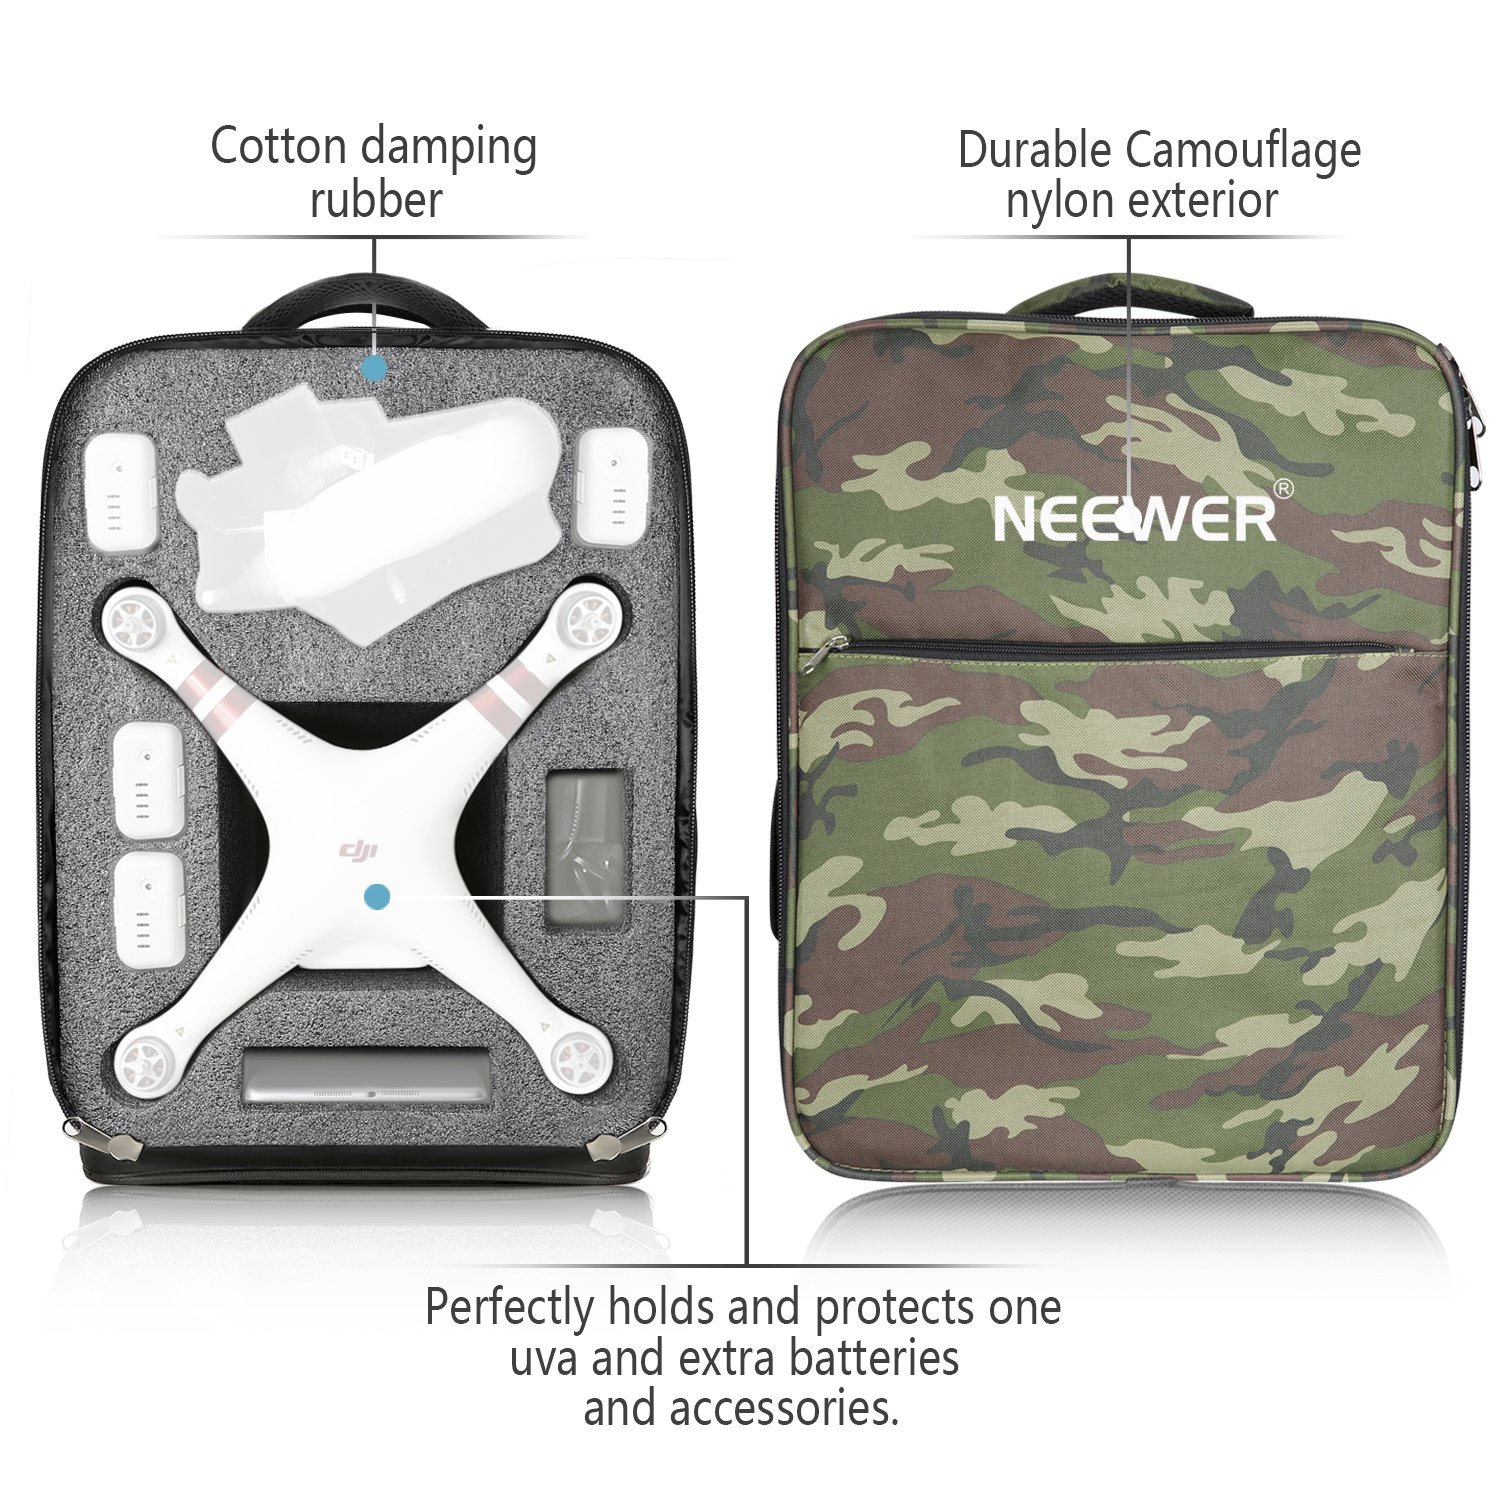 Neewer Multi-Function Waterproof Backpack Bag Case for DJI Phantom 1 FC40 2 2 Vision 2 Vision+ 3, DJI 3 Professional, Advanced, Standard, 4K Cameras and Accessories(Camouflage) by Neewer (Image #4)